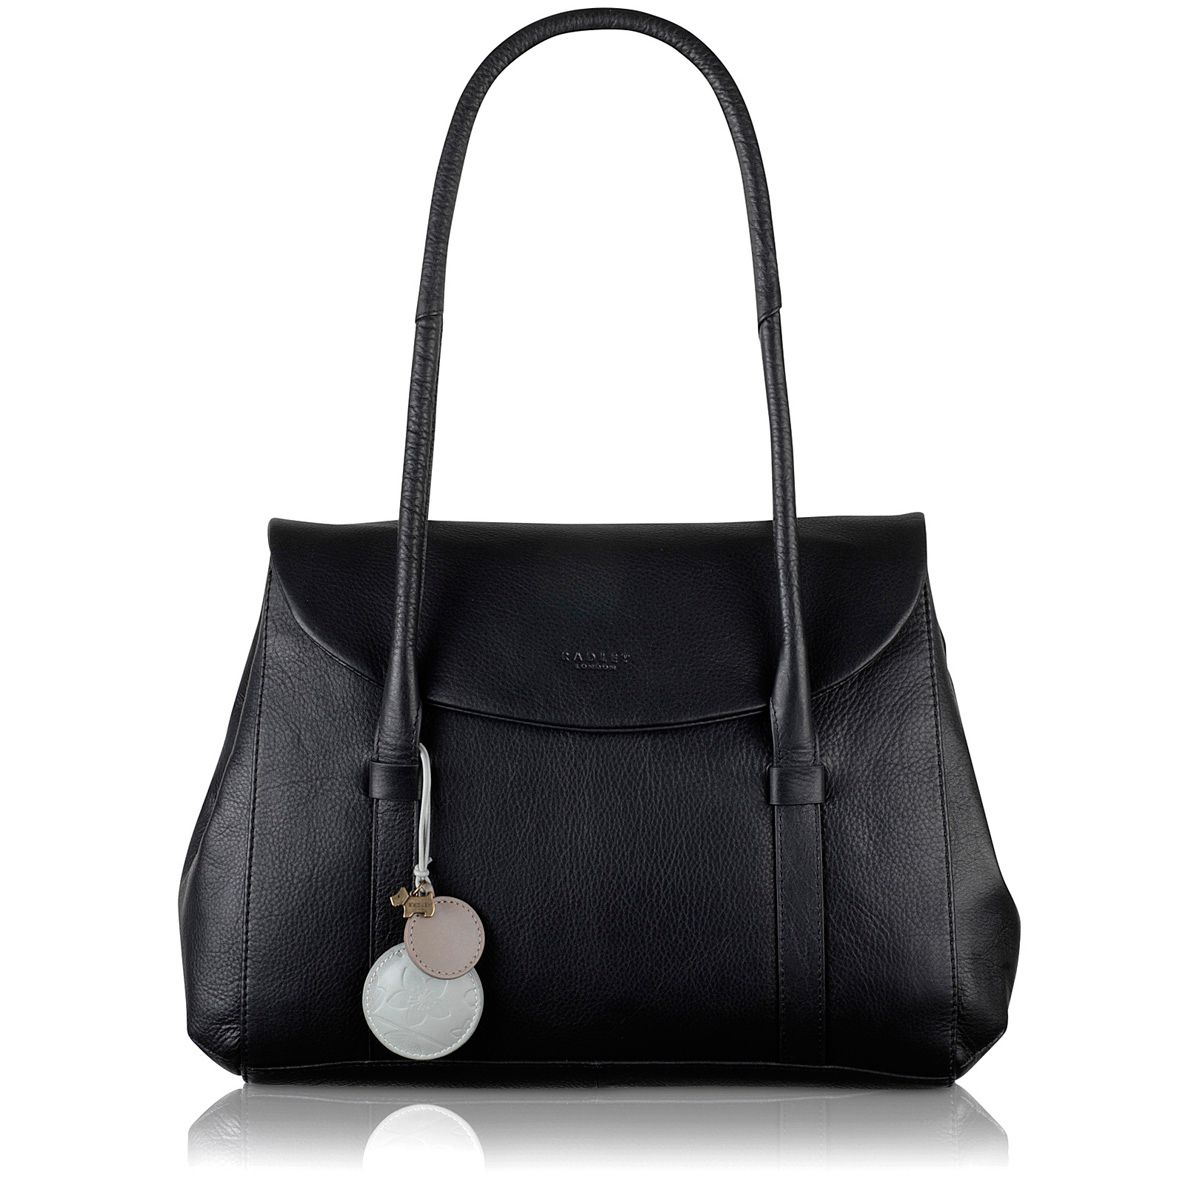 Waterloo medium flapover tote black leather bag